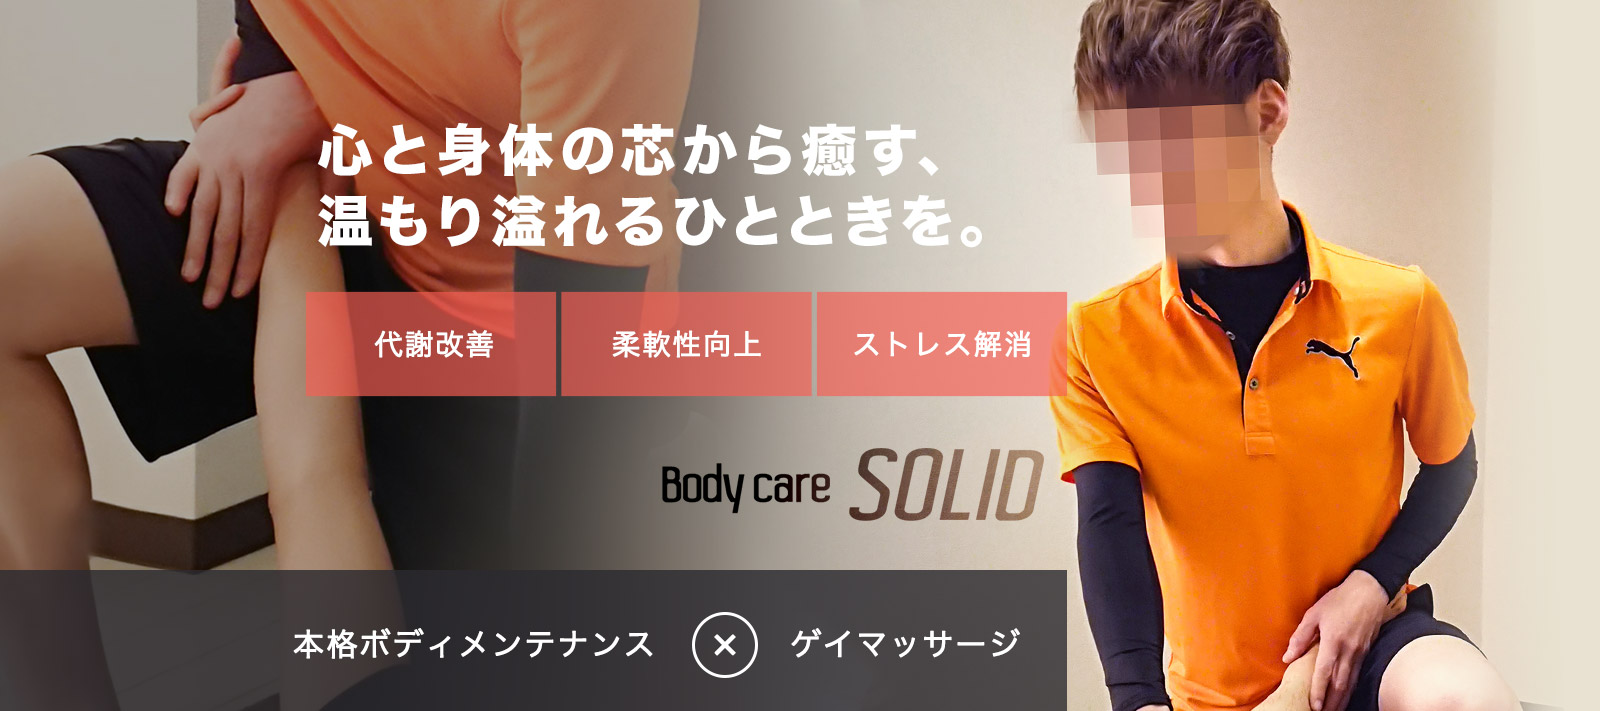 Body care SOLID